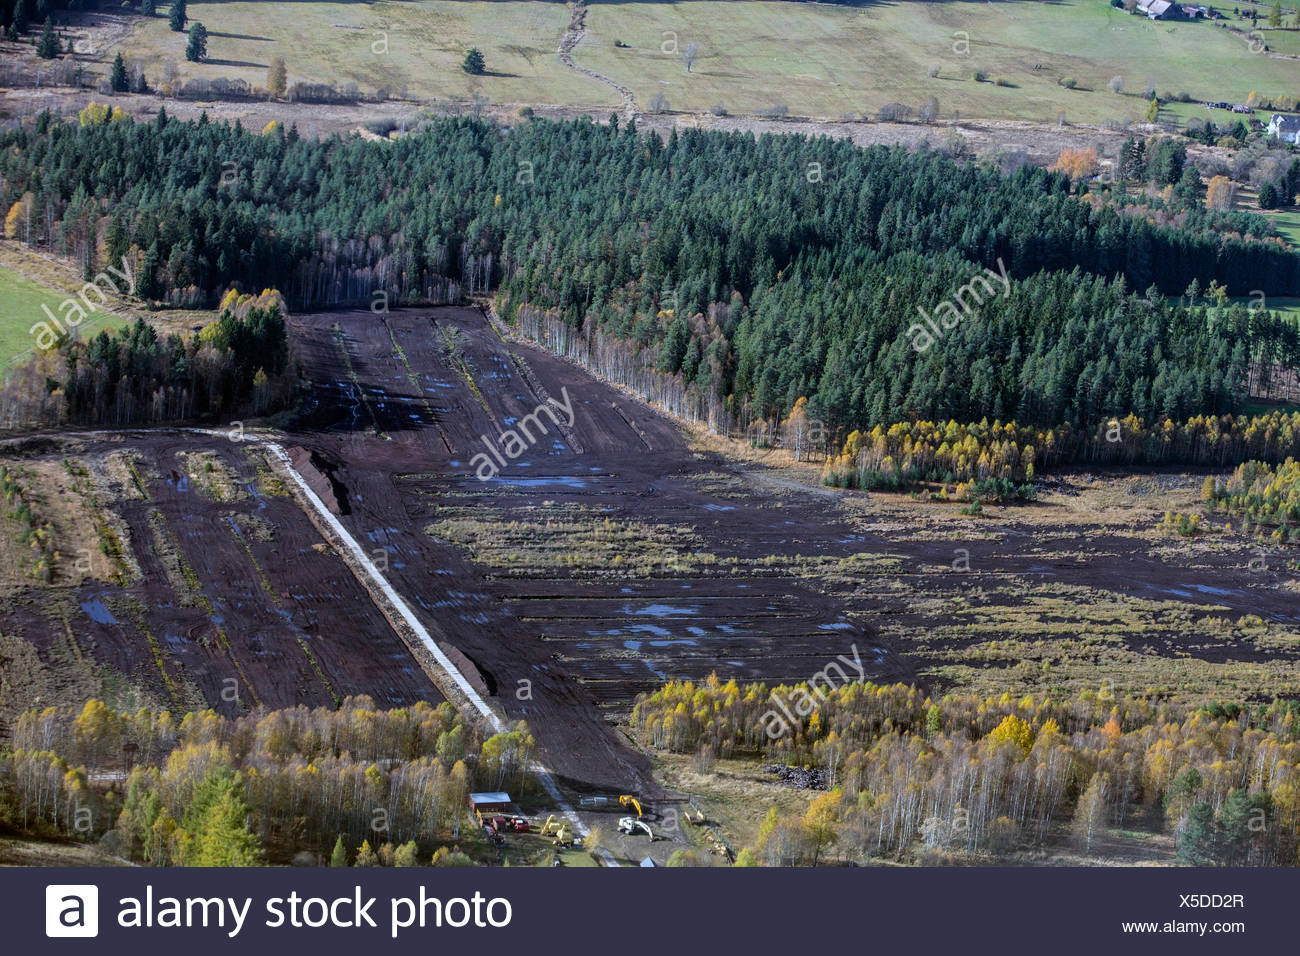 aerial view to peat mining area, Czech Republic, Boehmerwald - Stock Image